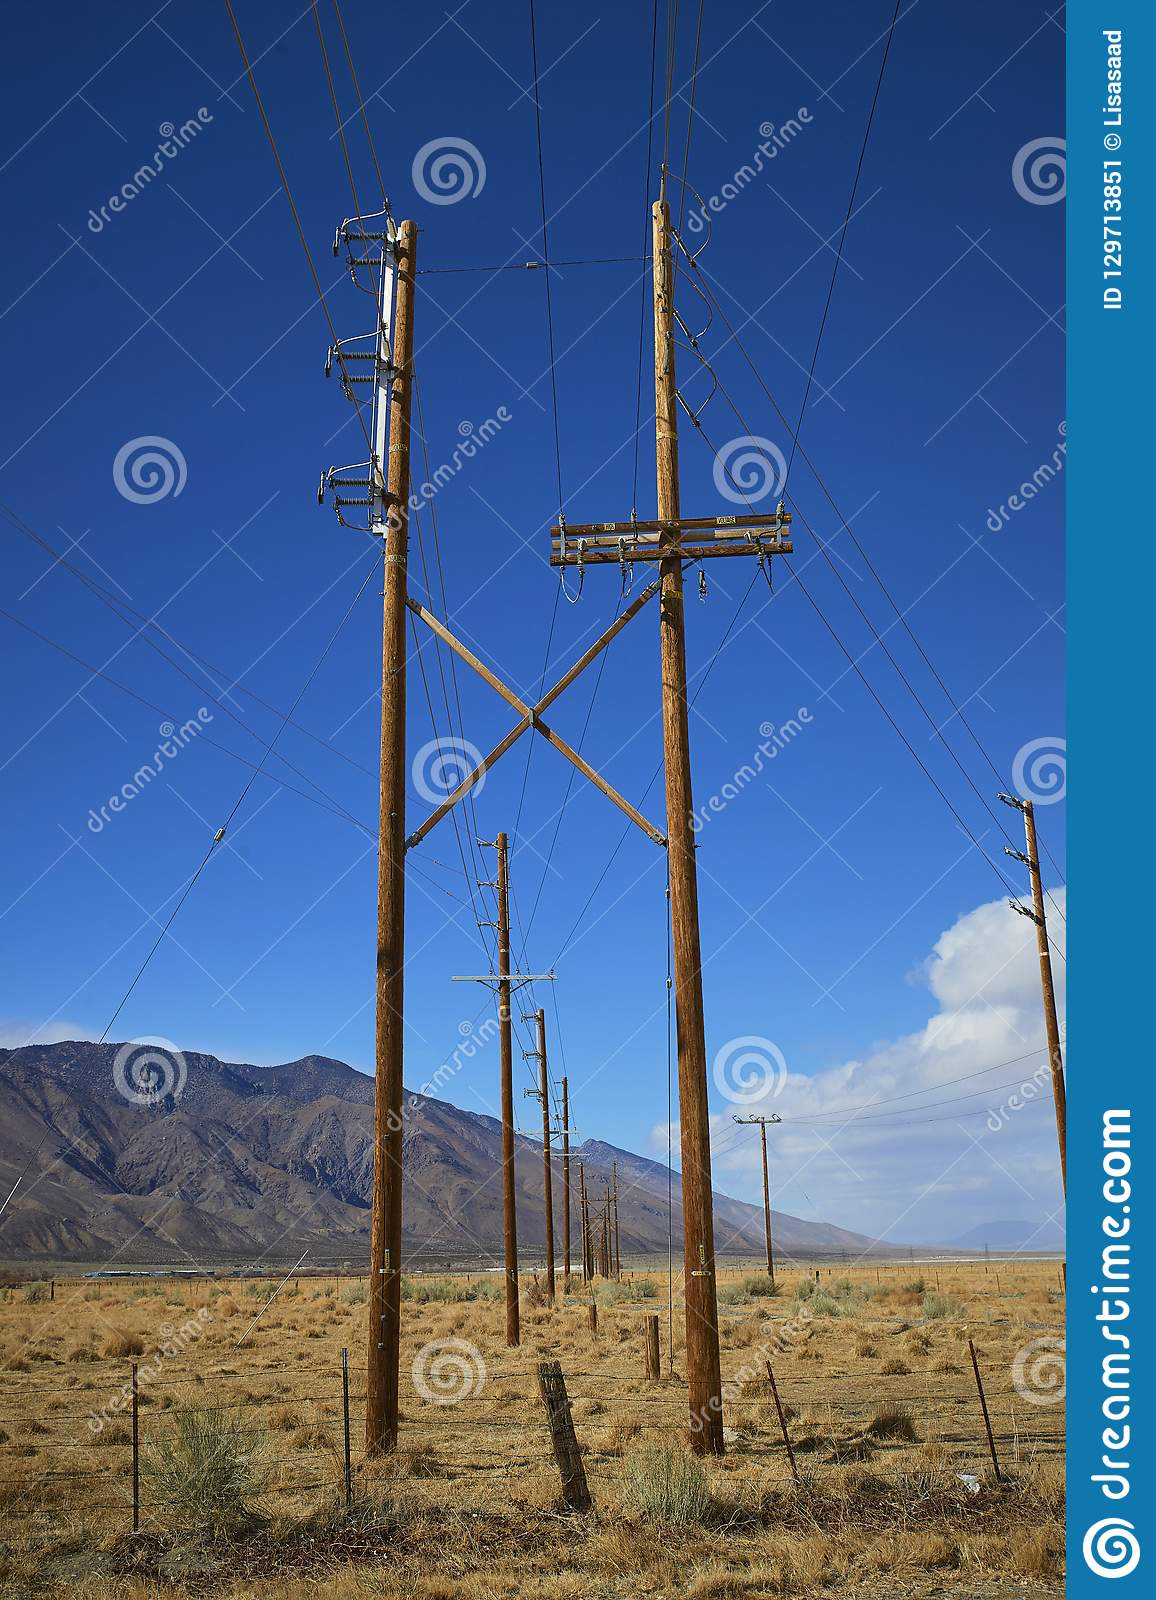 Utility Poles In Desert  Clear Blue Sky And Mountains In Distance